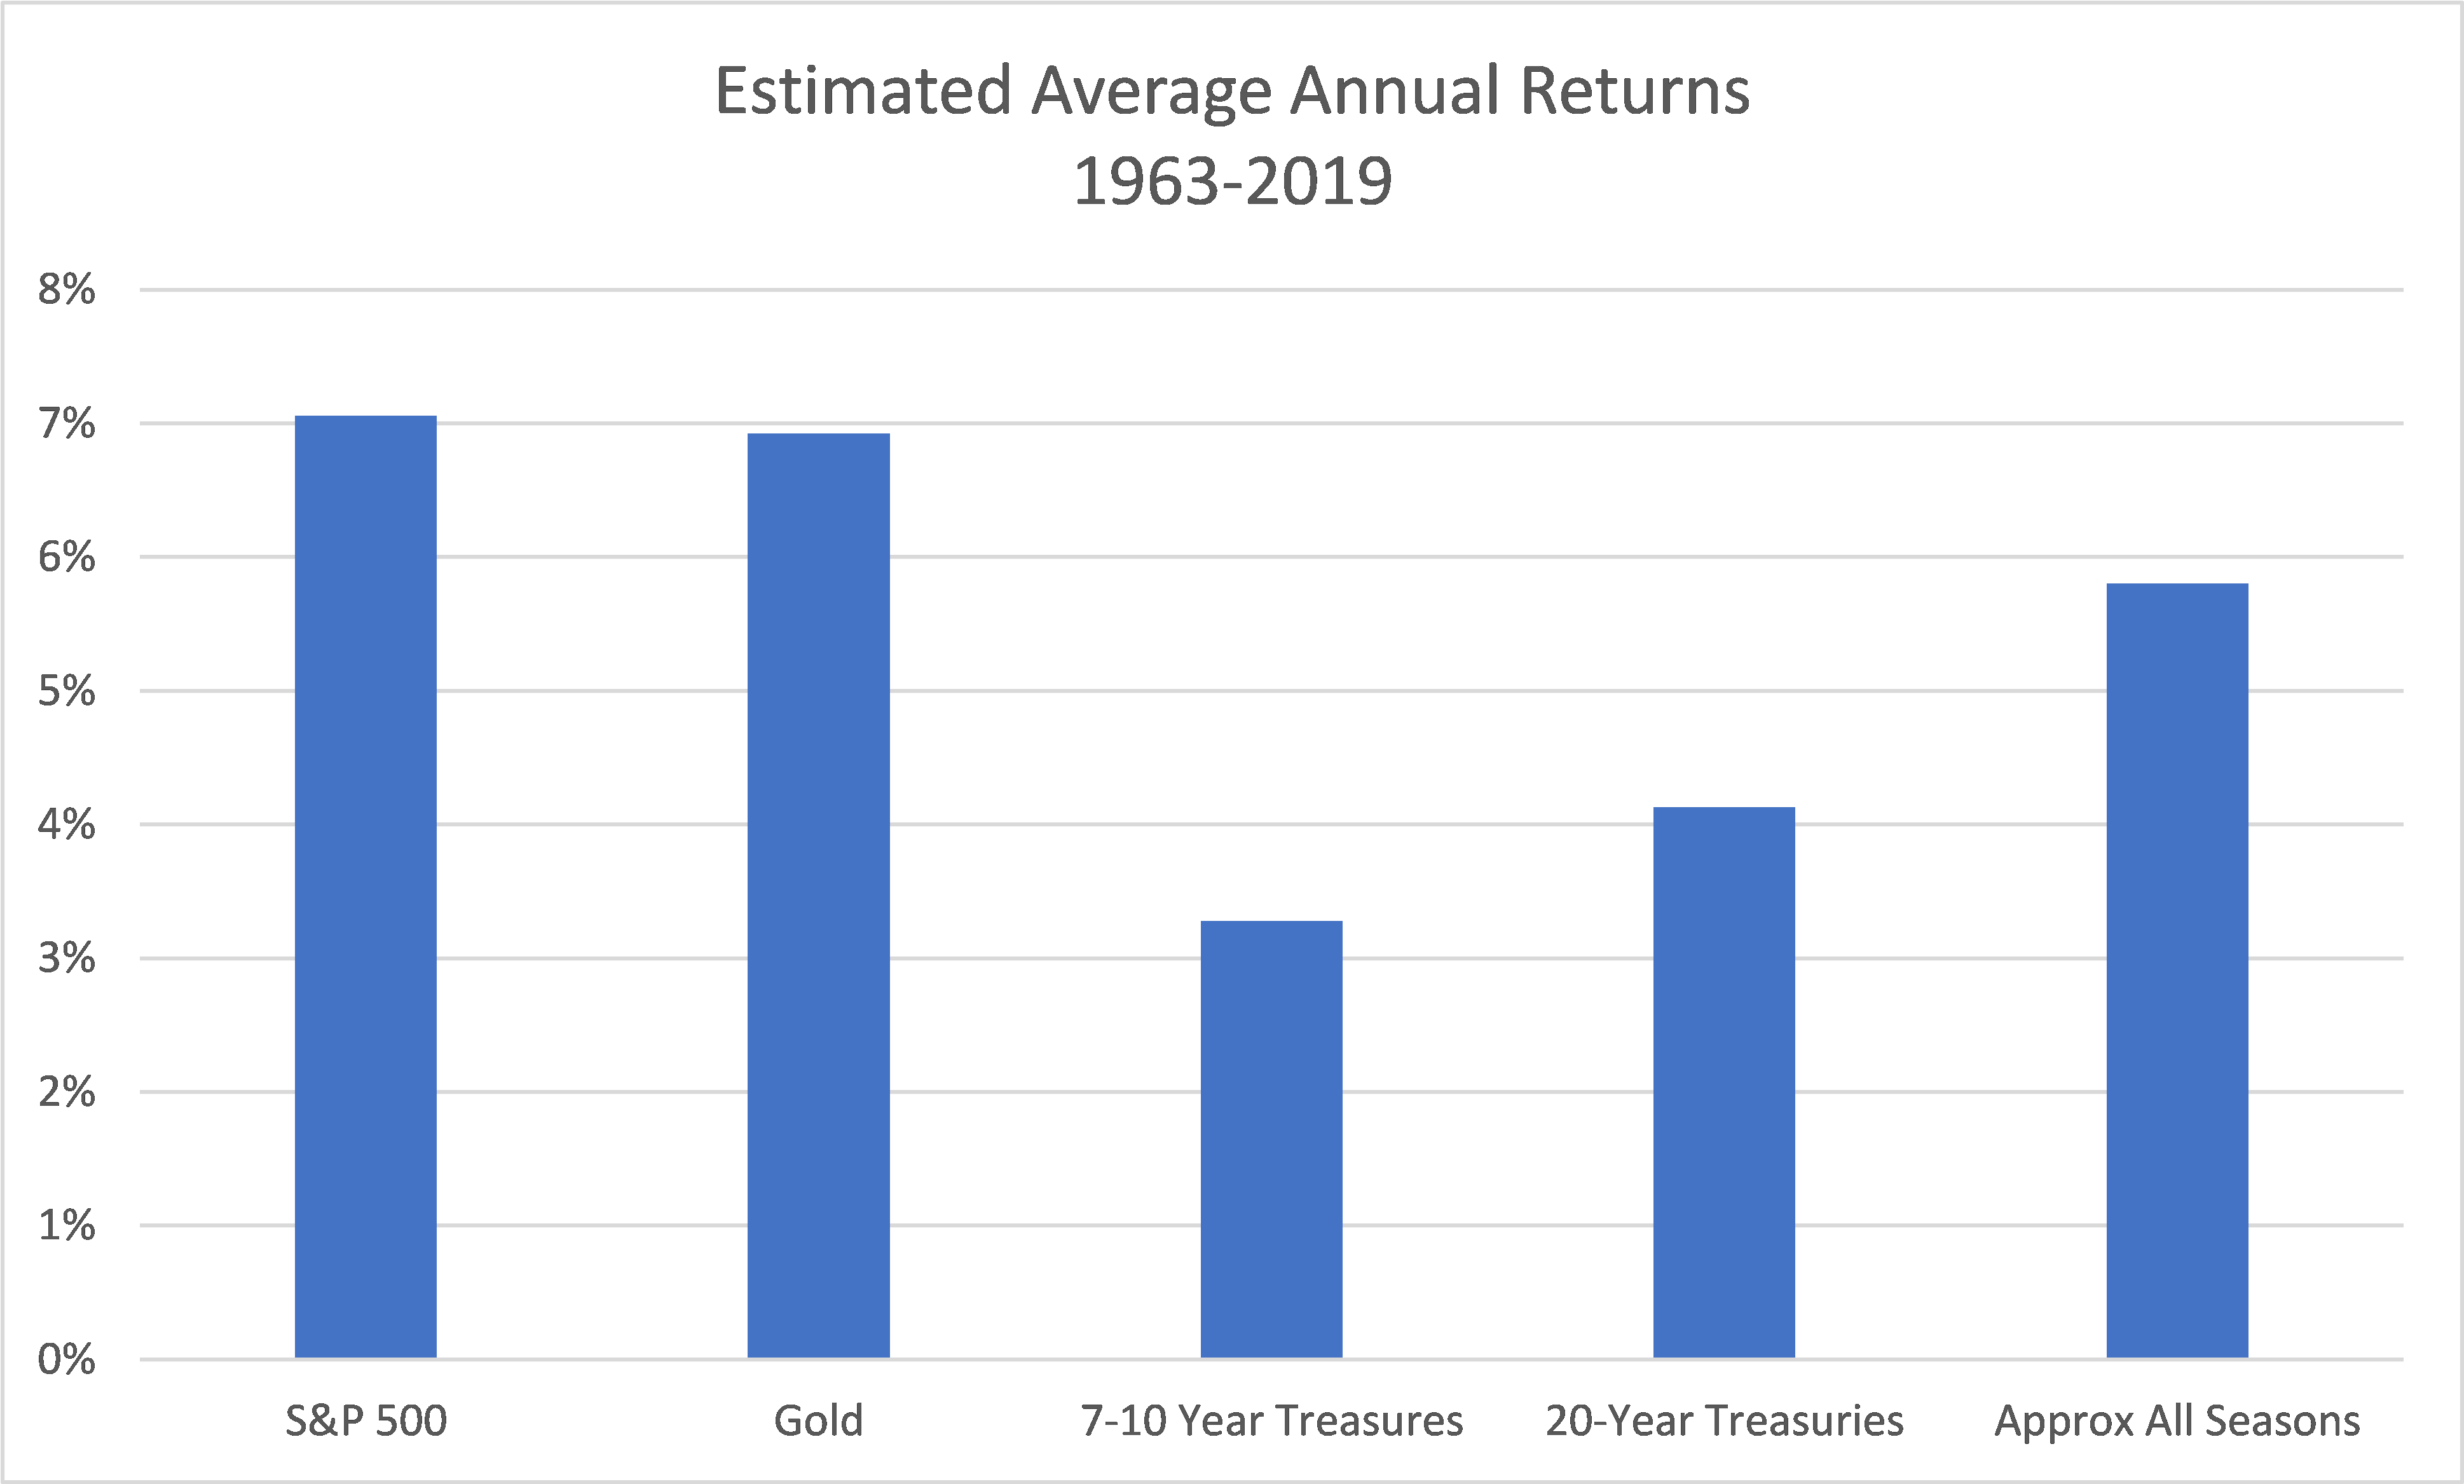 Average returns from 1962-2019 on S&P 500 (7%), Gold (7%), 7-10 Year Treasuries (3%), 20-Year Treasuries (4%) and All Seasons Portfolio (6%)